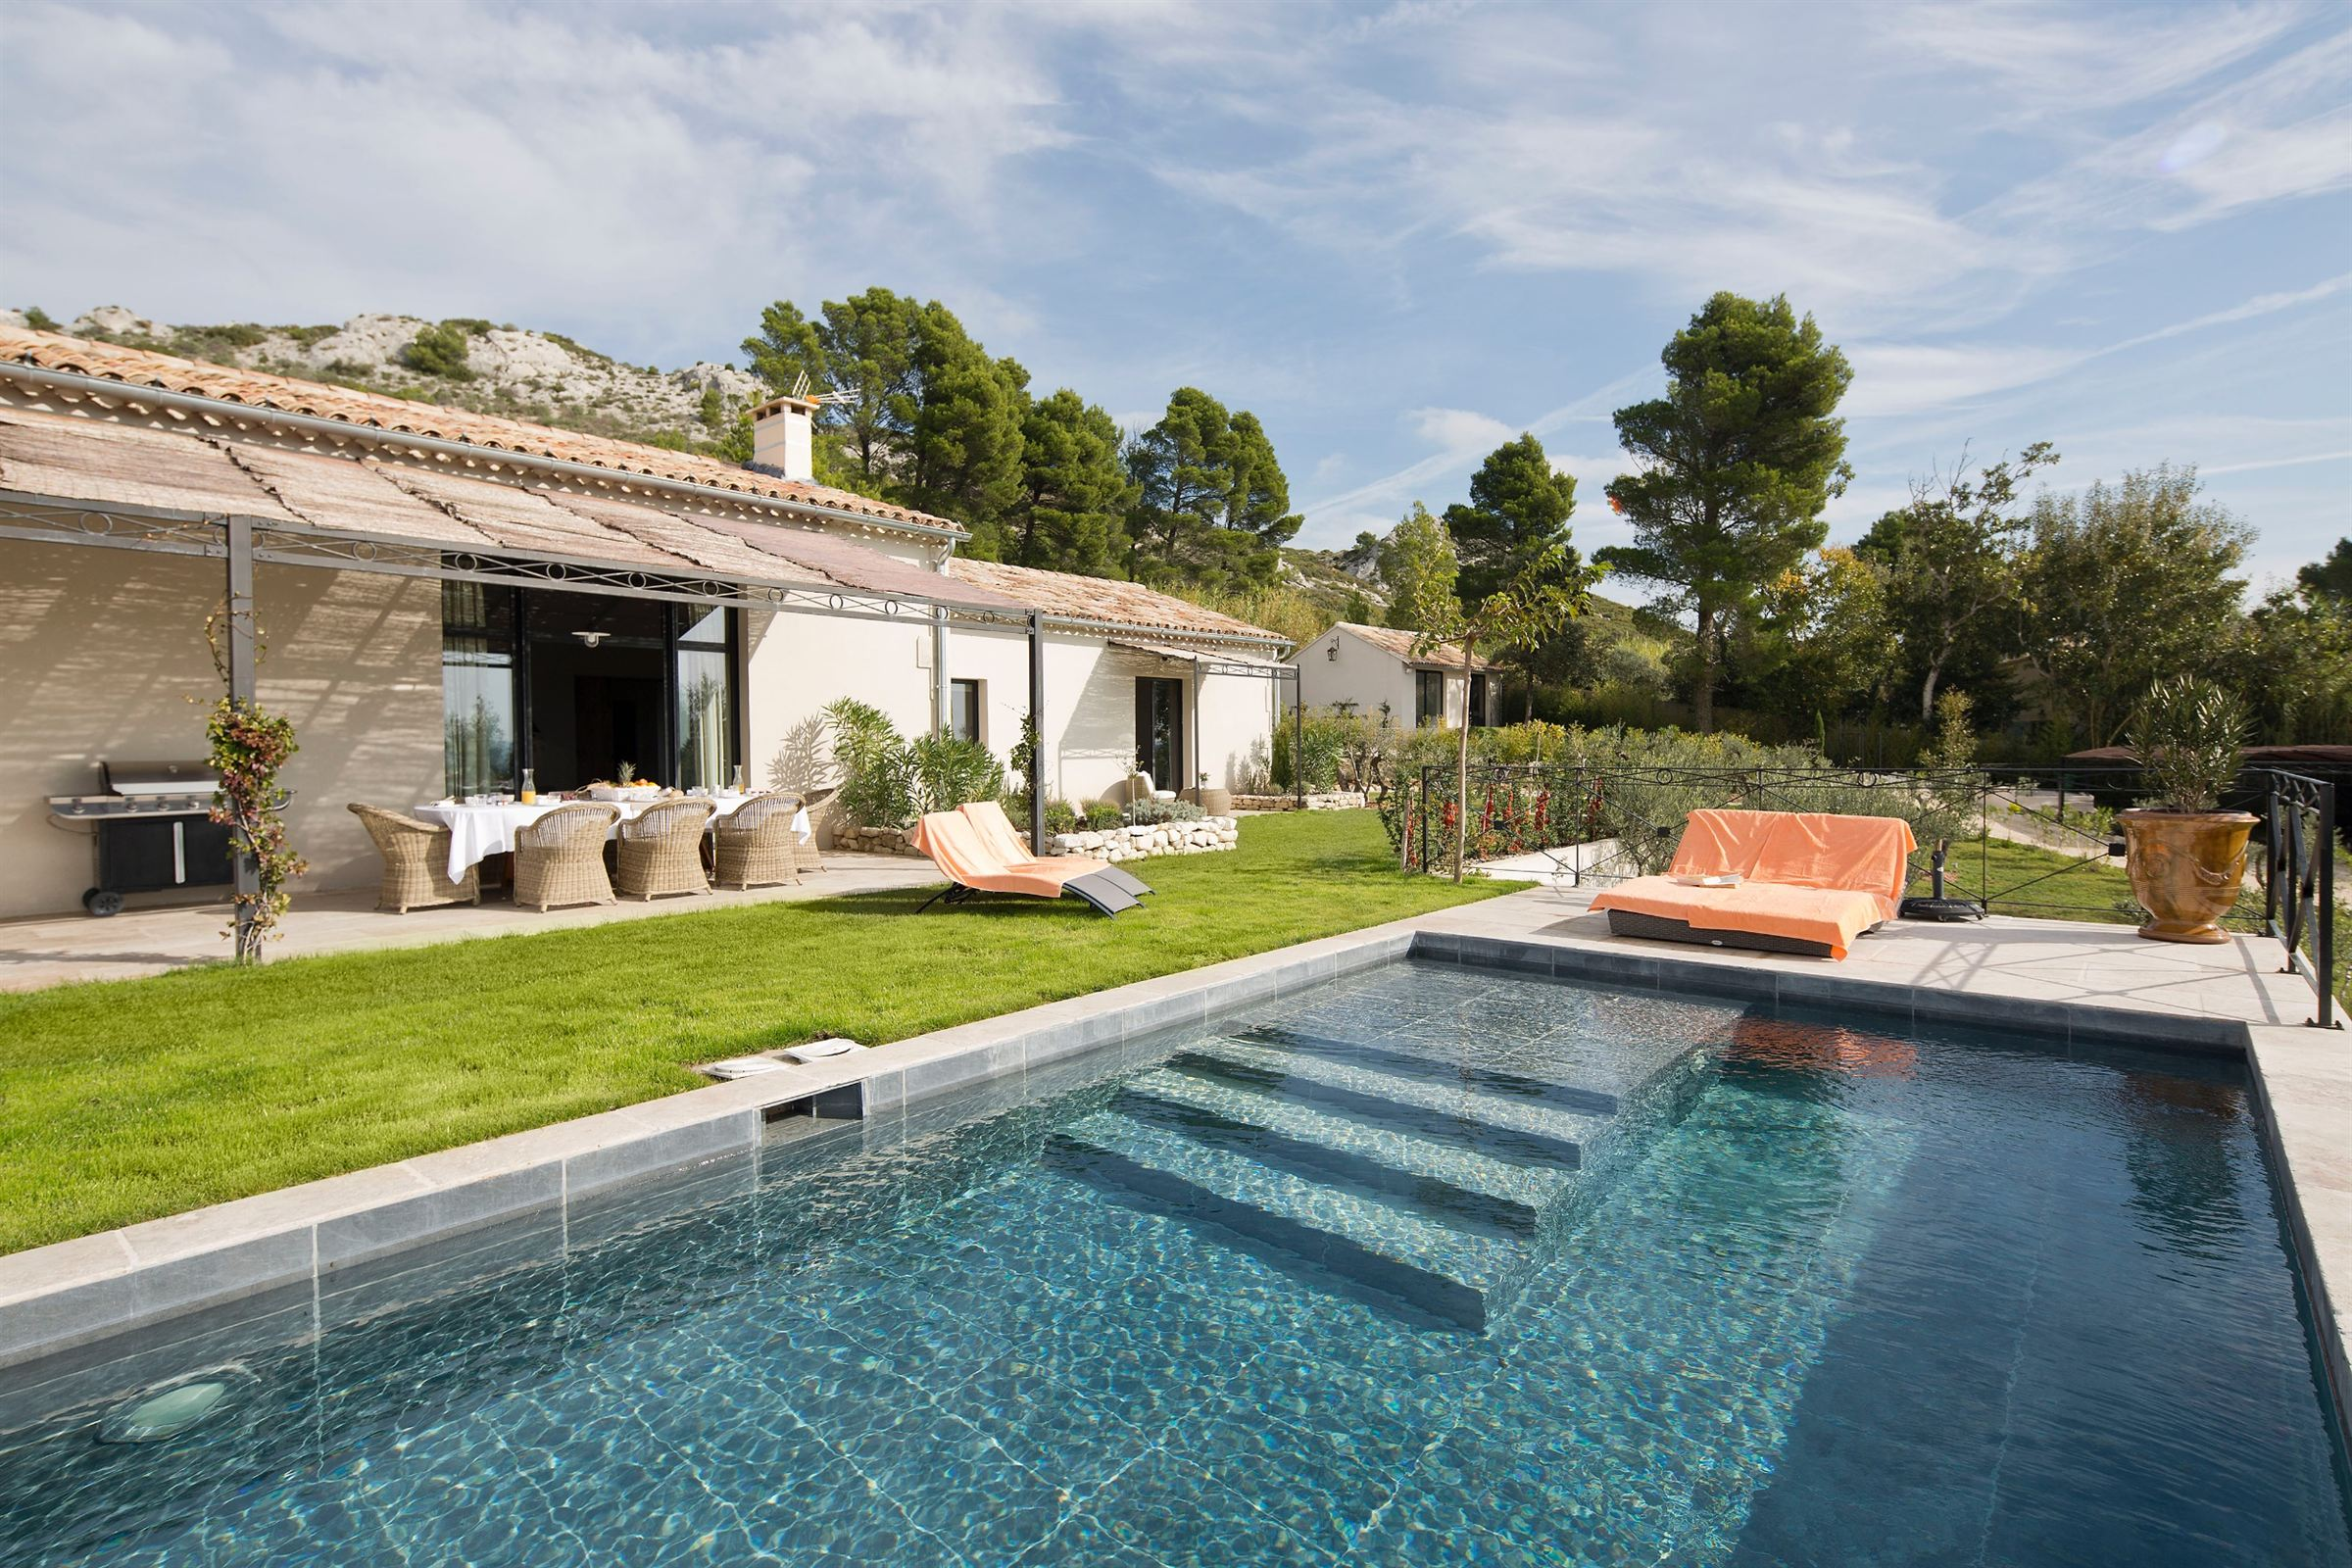 Property Of Charming renovated farmhouse located in Maussane Les Alpilles